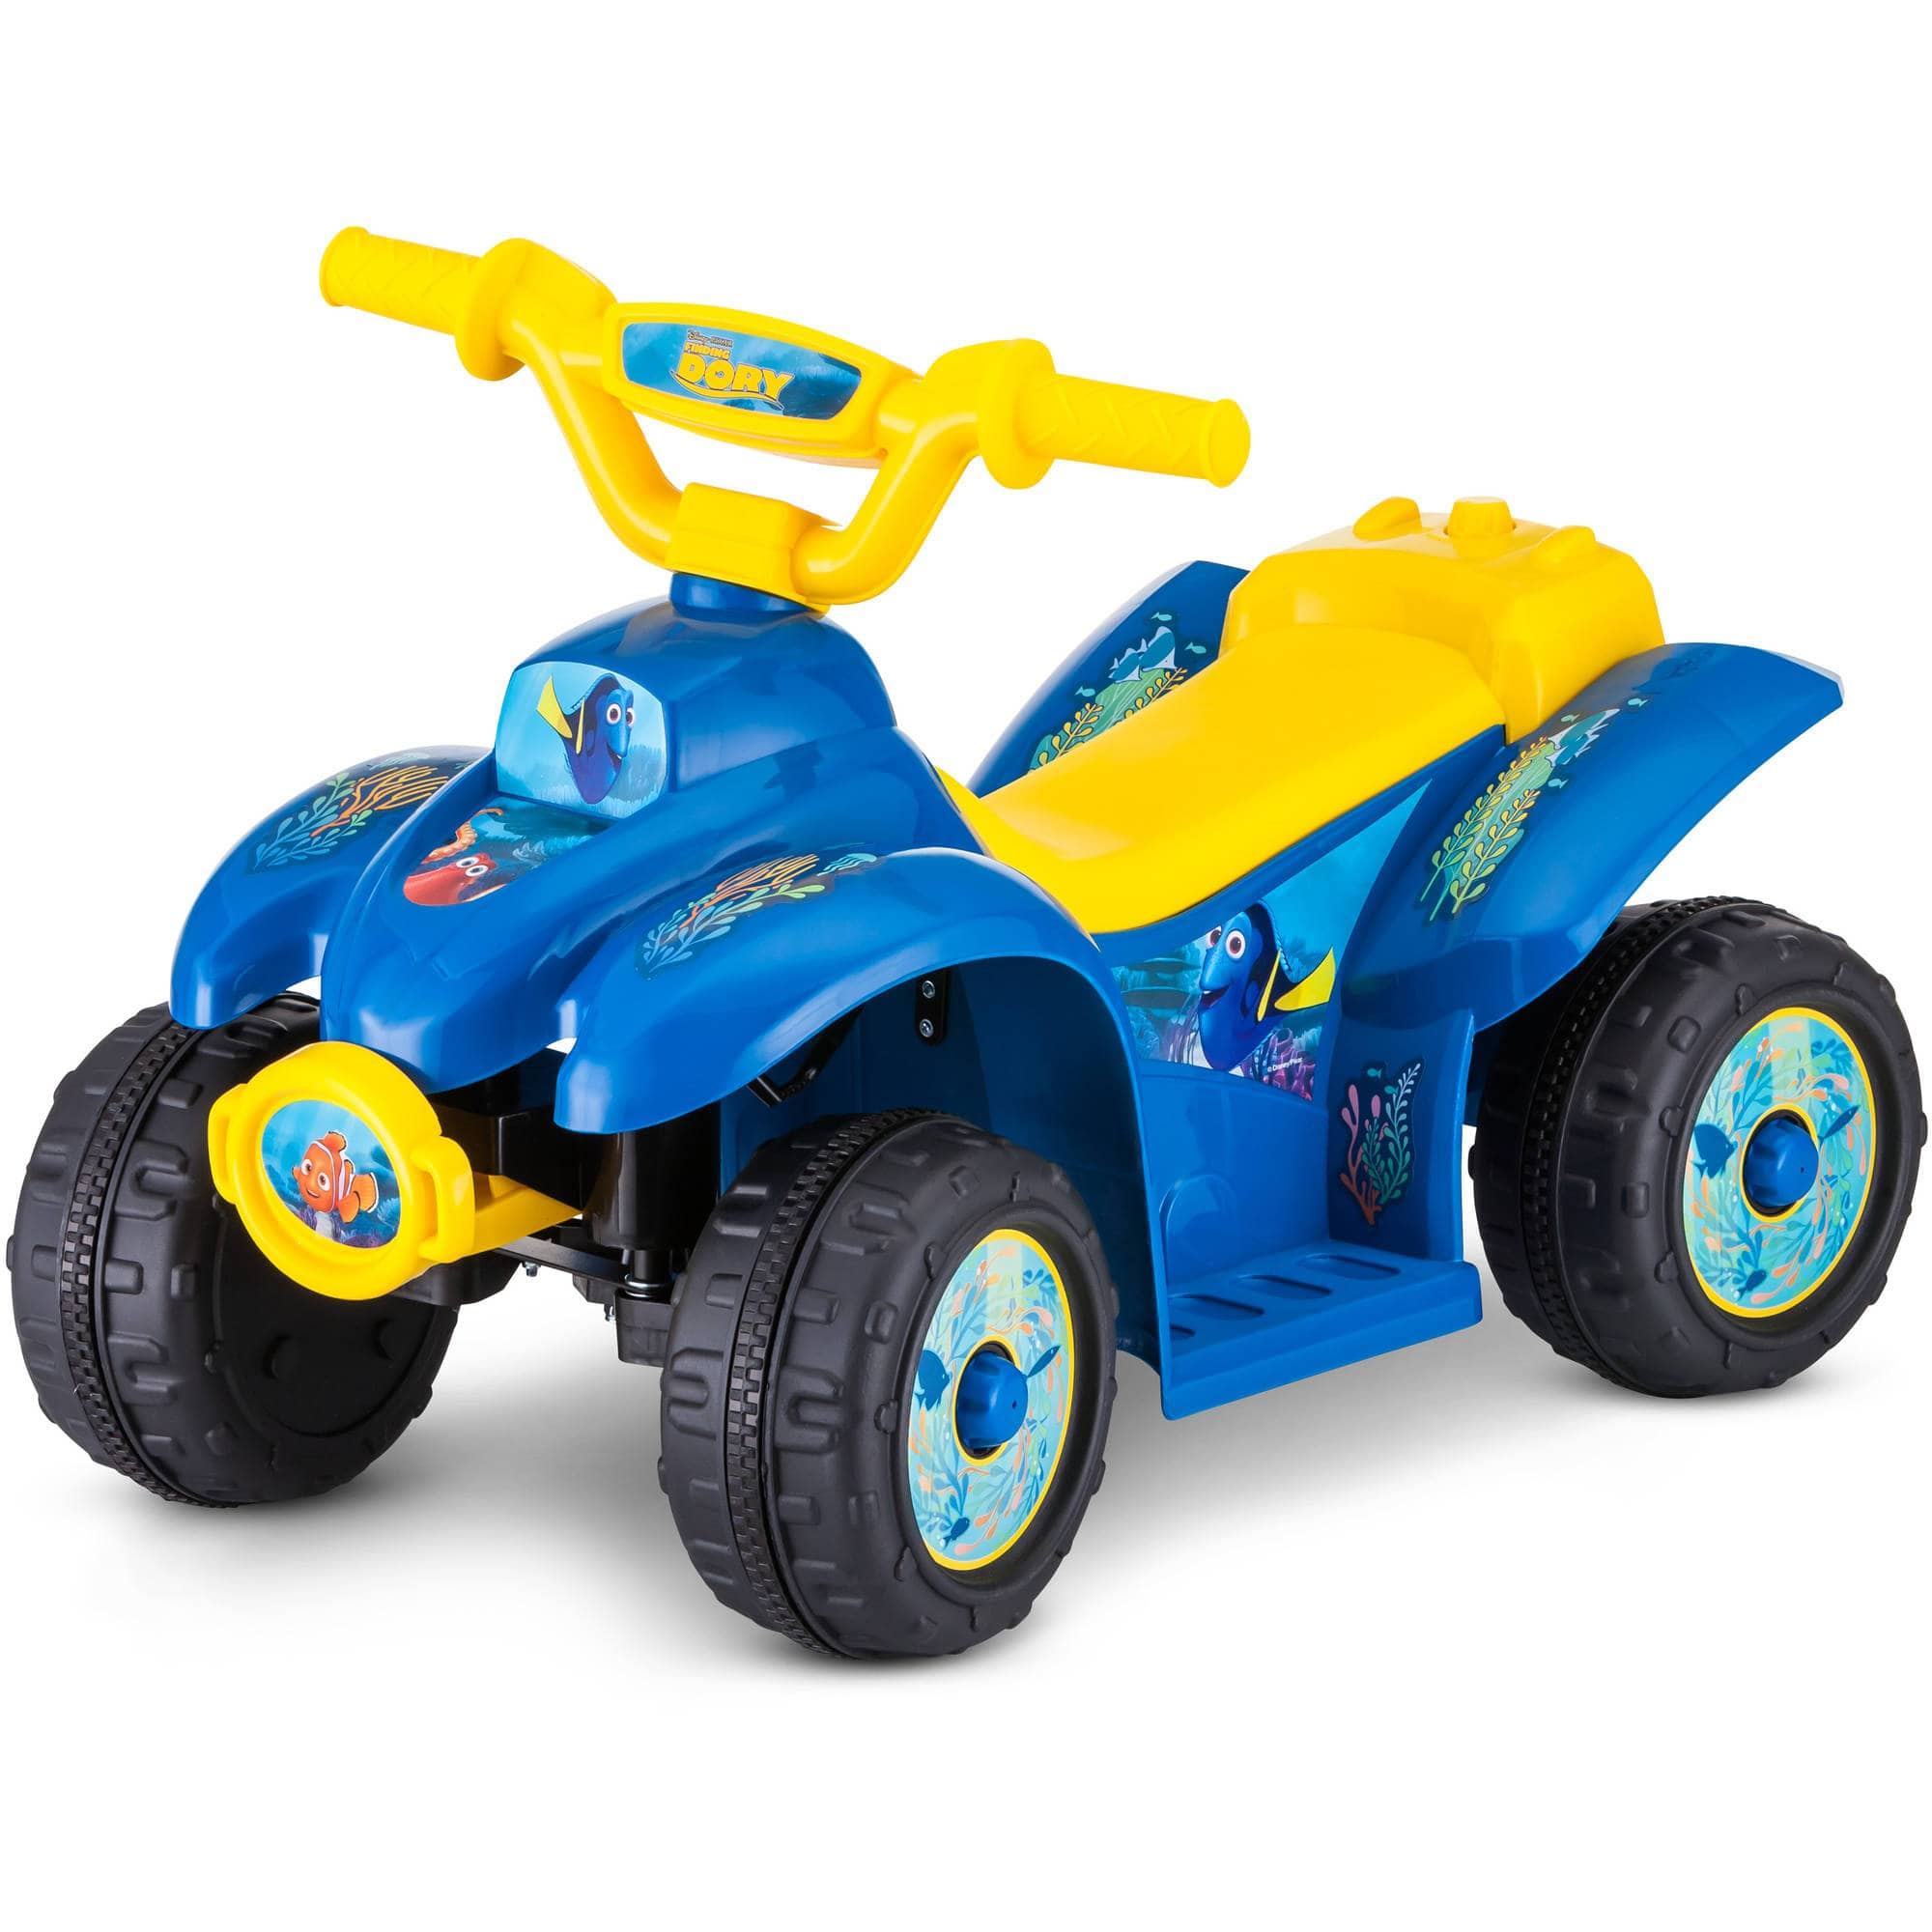 6V Disney Finding Dory Toddler Quad Ride-On Walmart $29 + Free Store Pickup at Walmart